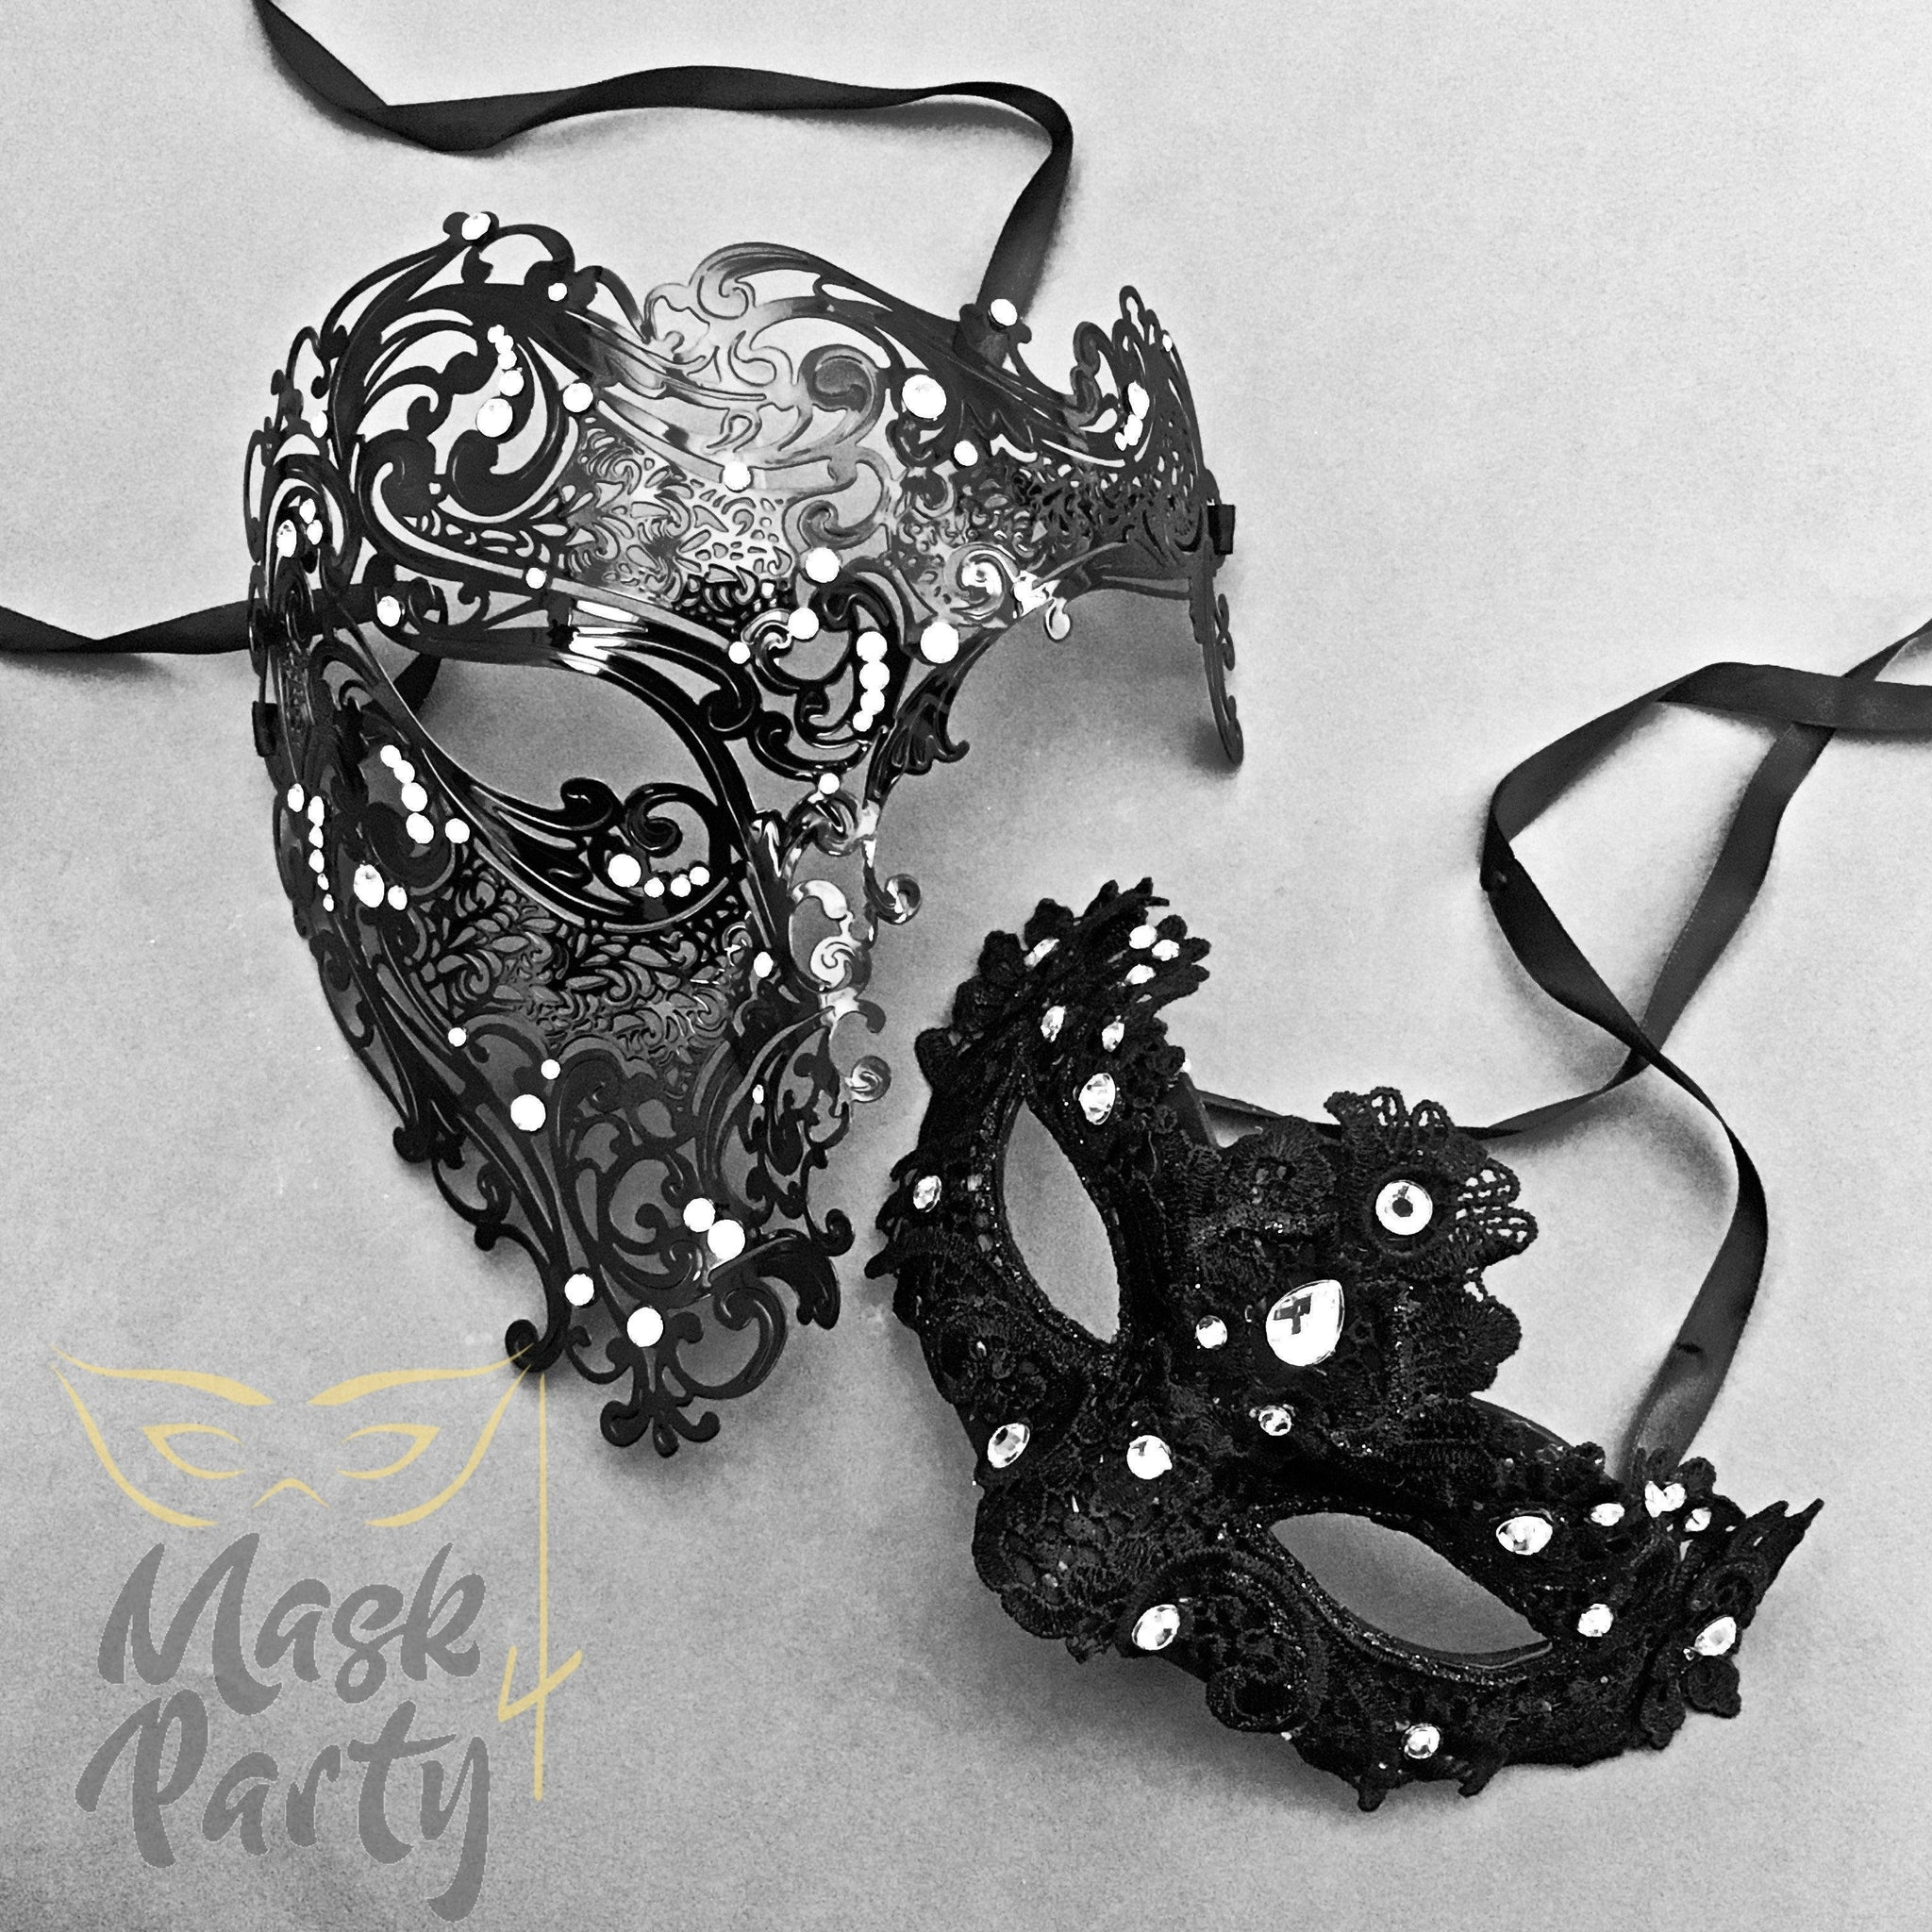 Masquerade Masks - Metal Skull & Brocade Lace - Black - Mask4Party